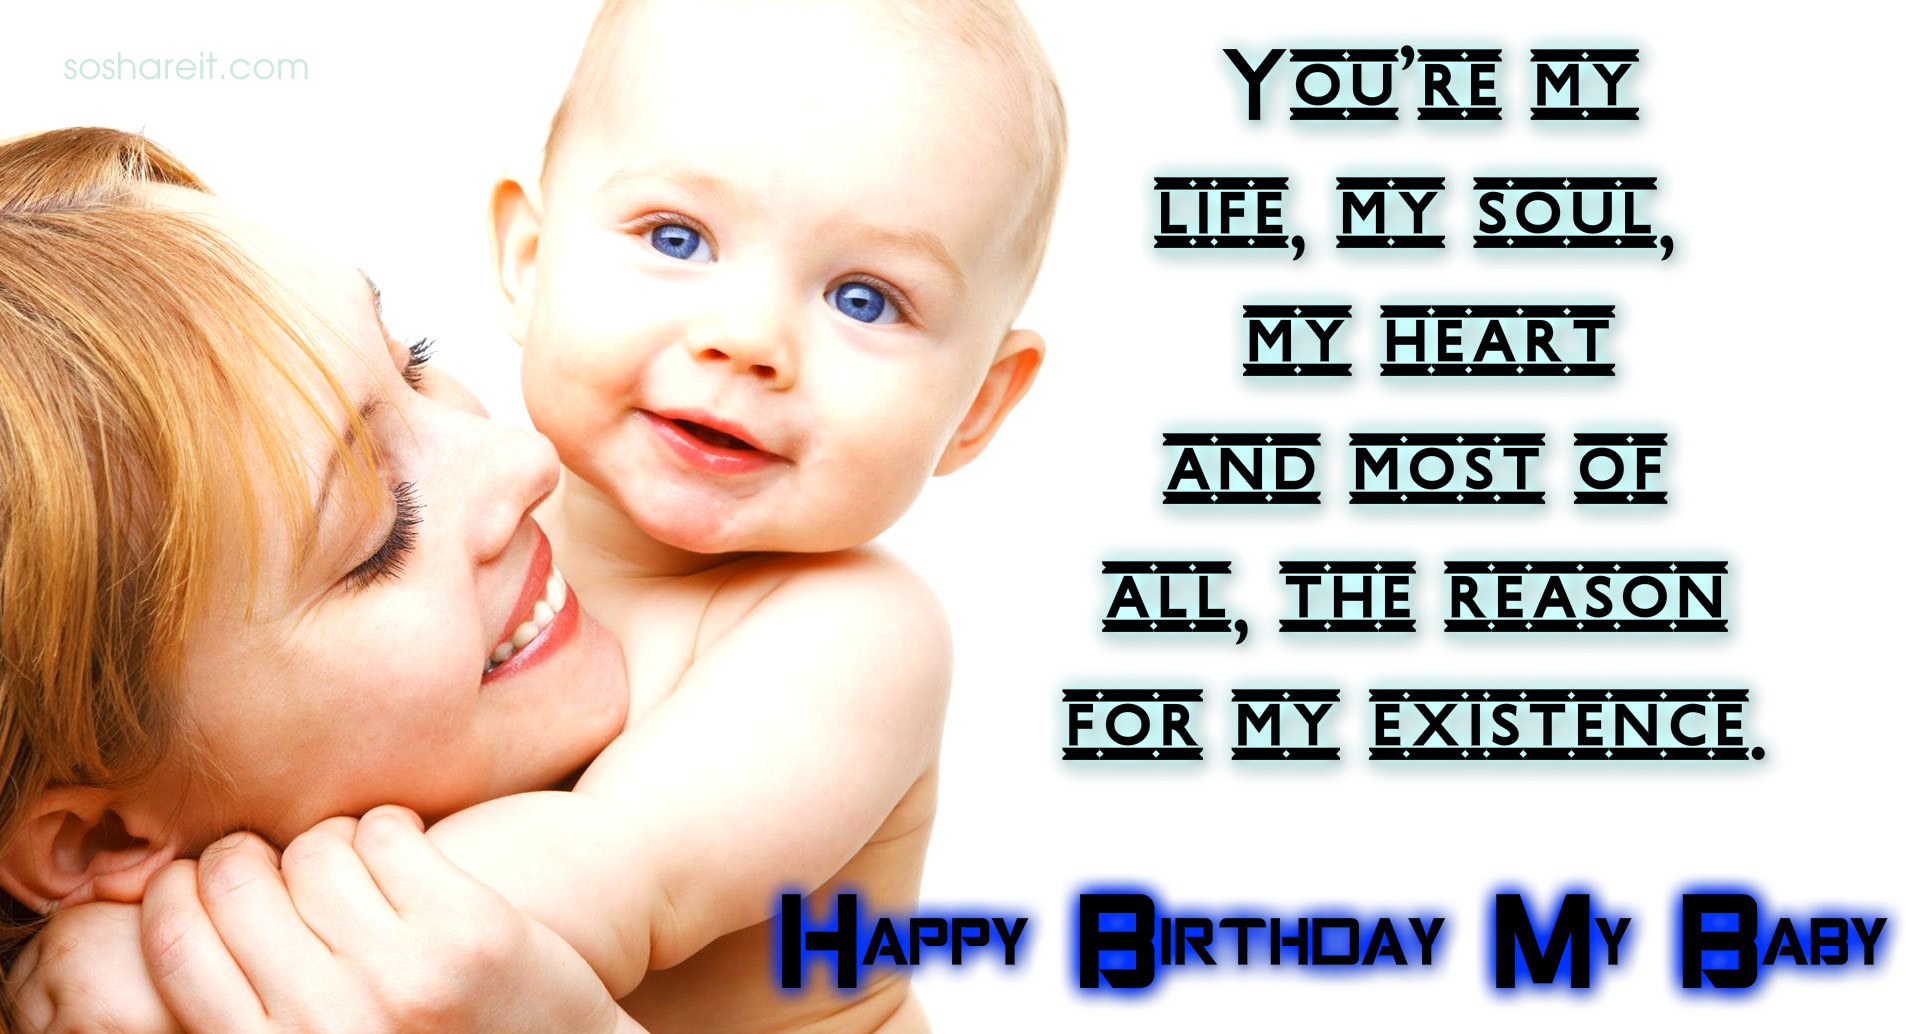 Happy Birthday Baby Wishes Wallpapers And Quotes Soshareit